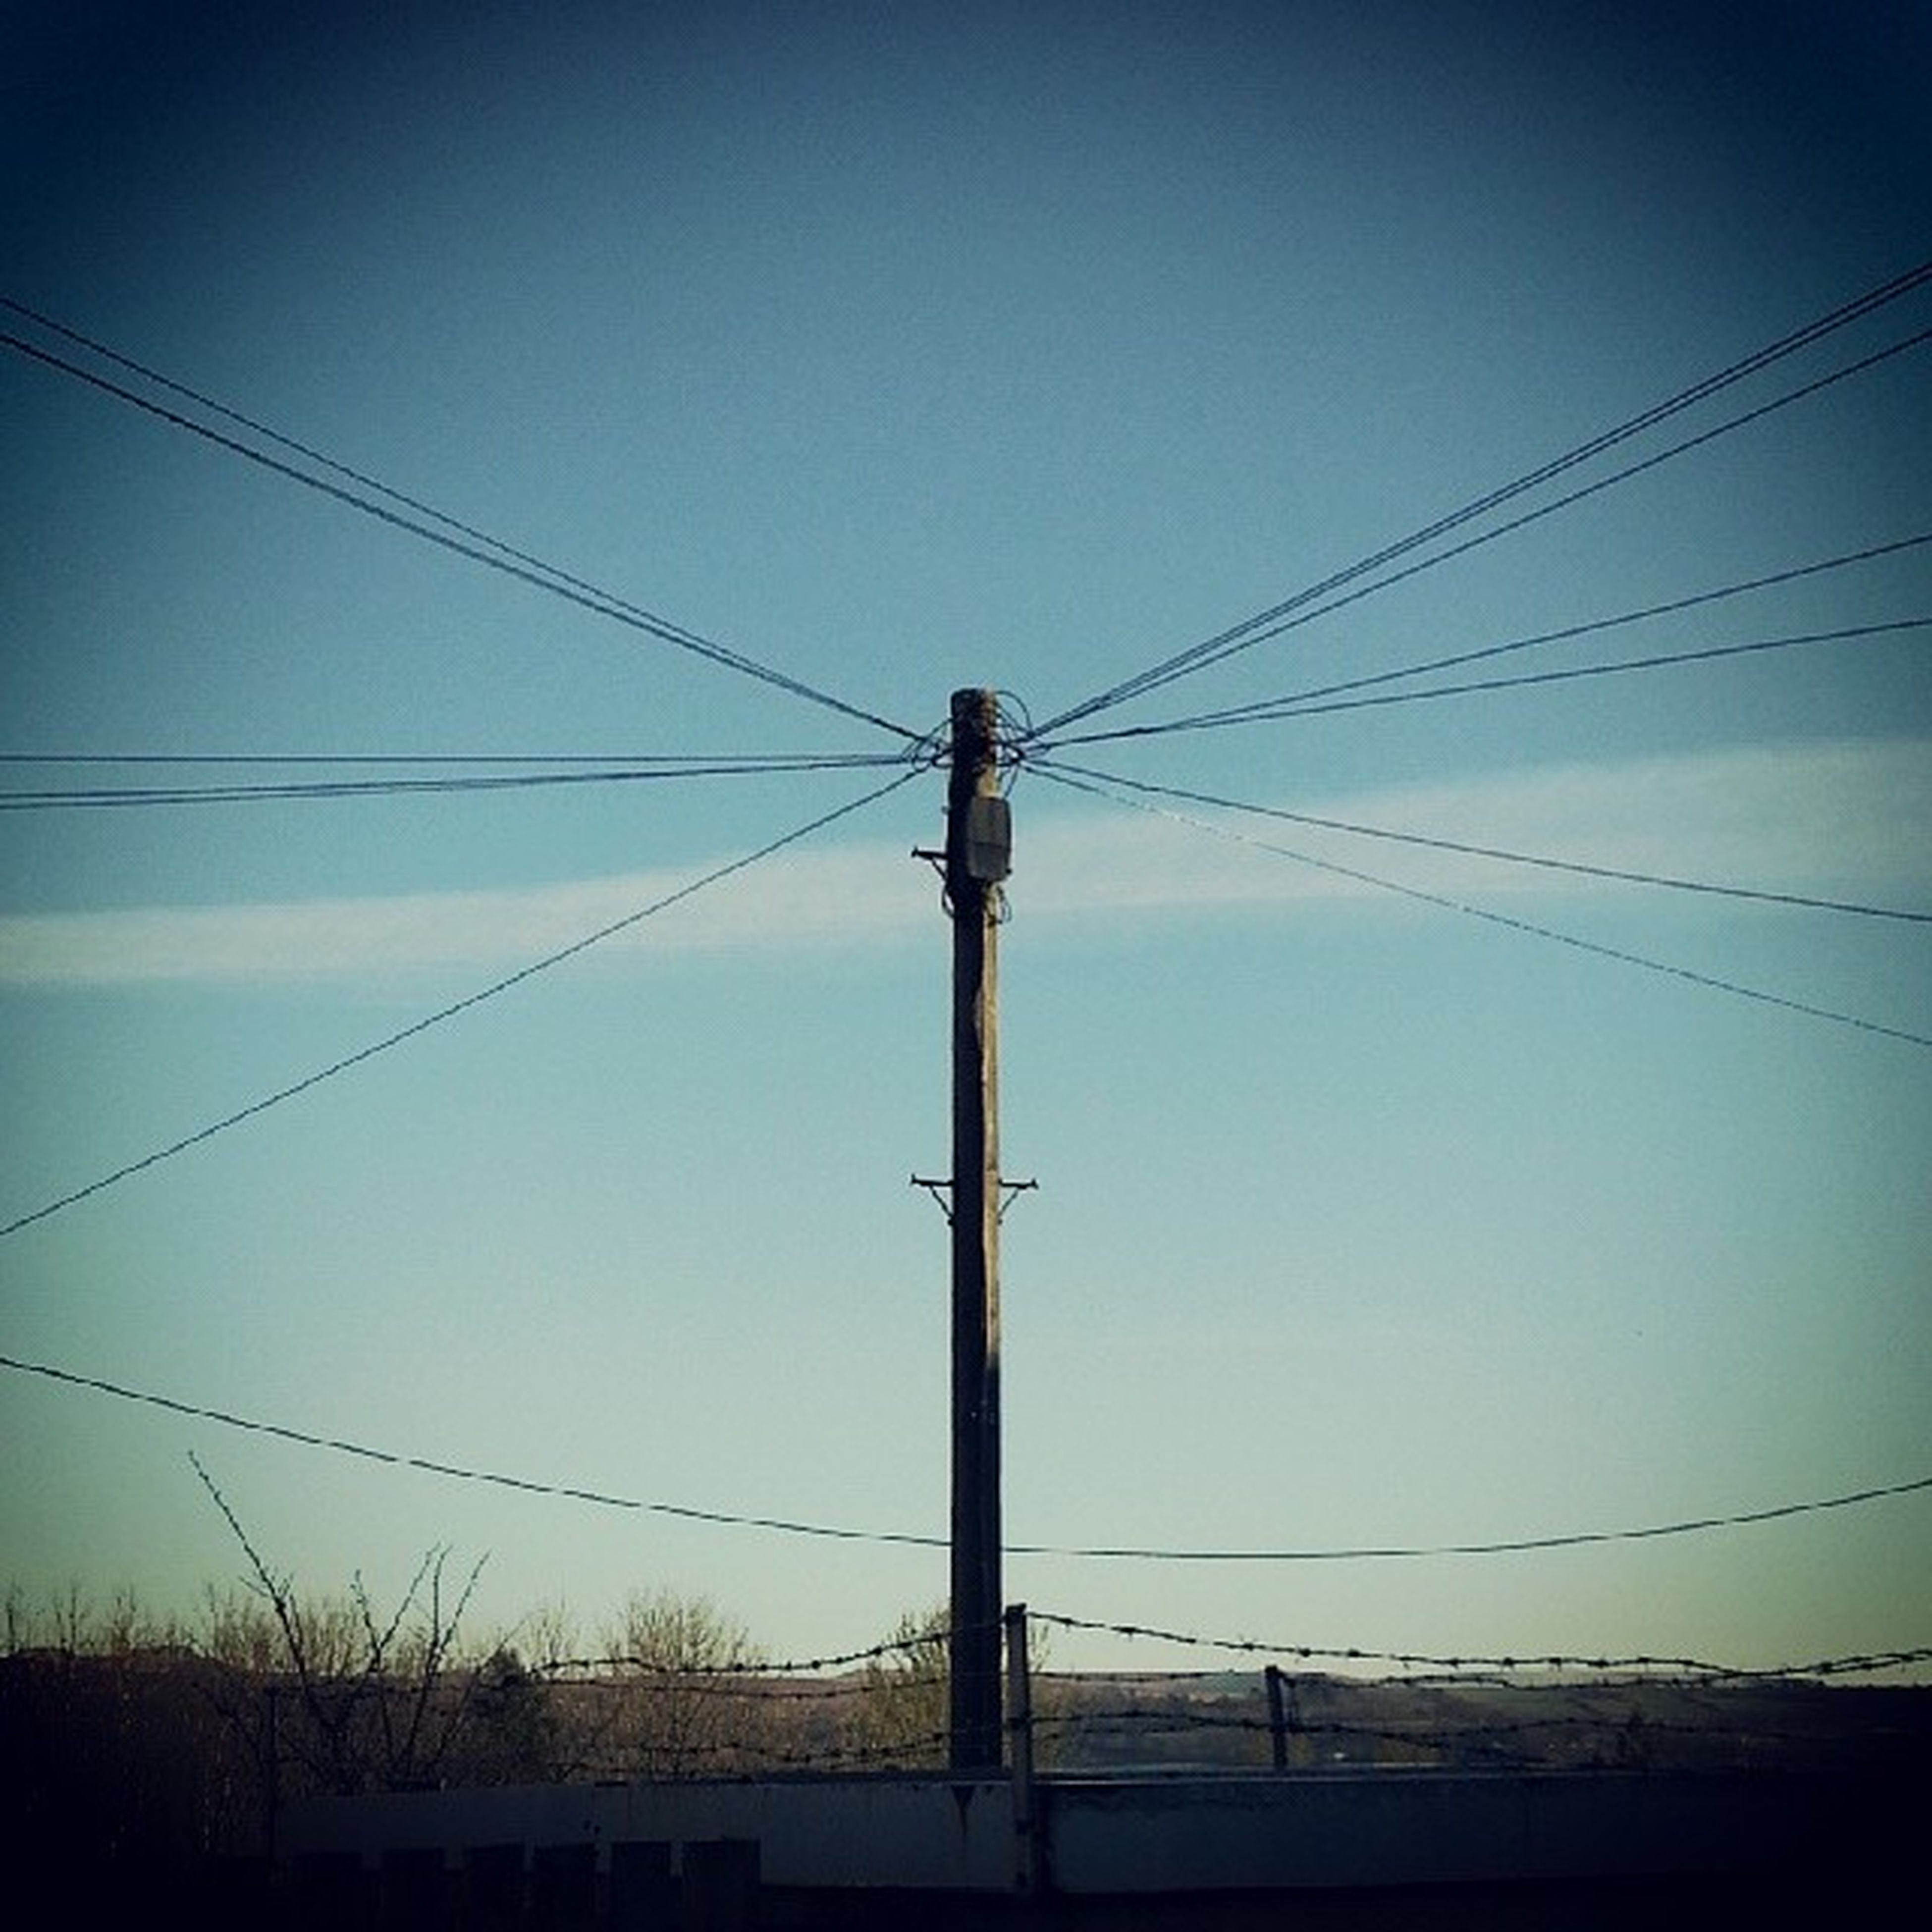 power line, power supply, electricity, electricity pylon, cable, connection, fuel and power generation, low angle view, technology, power cable, clear sky, blue, sky, silhouette, pole, outdoors, copy space, no people, telephone line, telephone pole